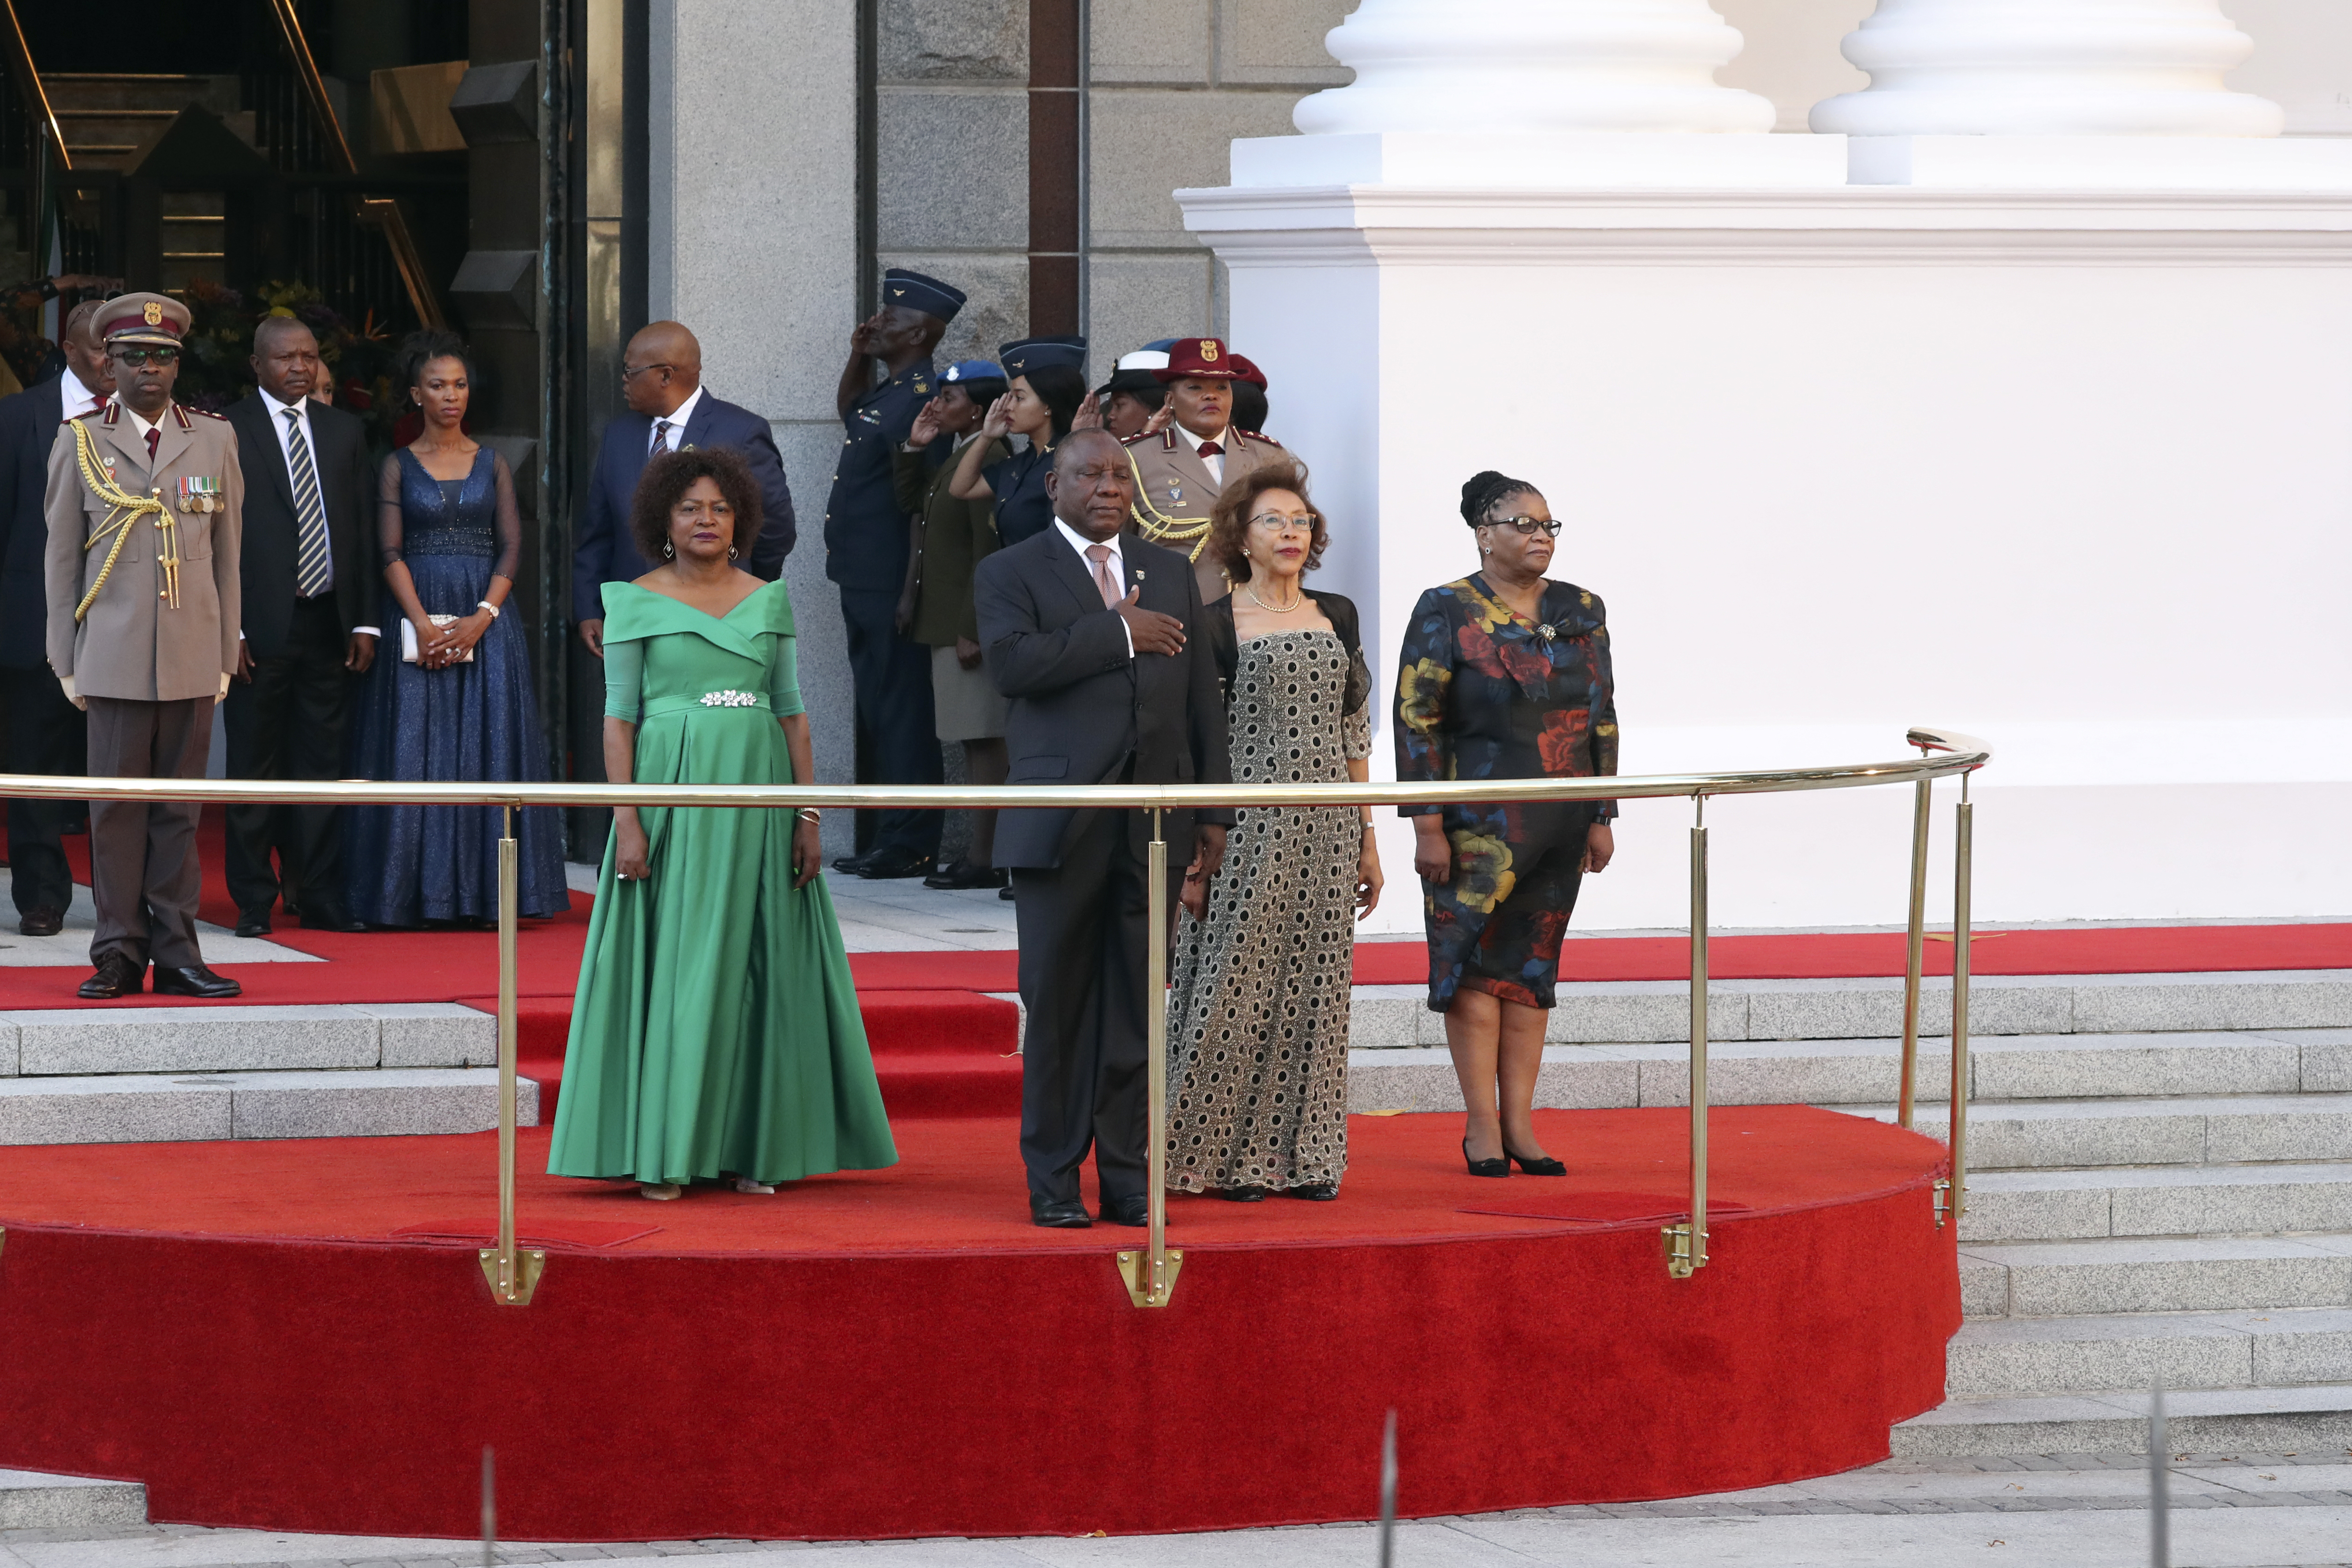 The opening of parliament ceremony and State Of The Nation Address (SONA) in parliament, Cape Town.